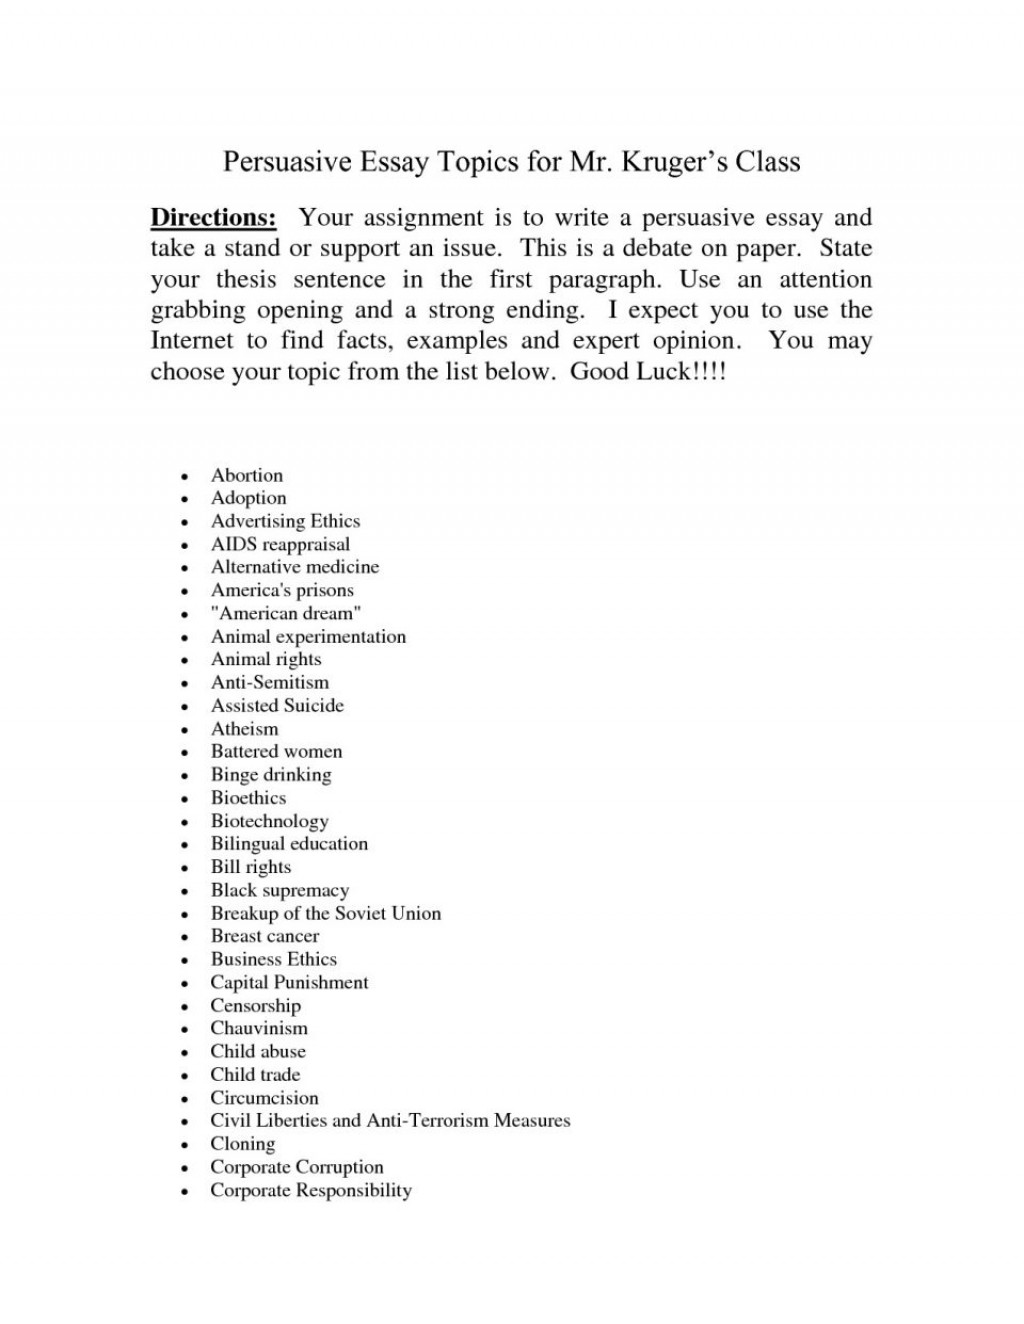 010 Topic For Essay Barca Fontanacountryinn Within Good Persuasive Narrative Topics To Write Abo Easy About Personal Descriptivearch Paper Informative Synthesis College 960x1242 Incredible Research Interesting Funny Large